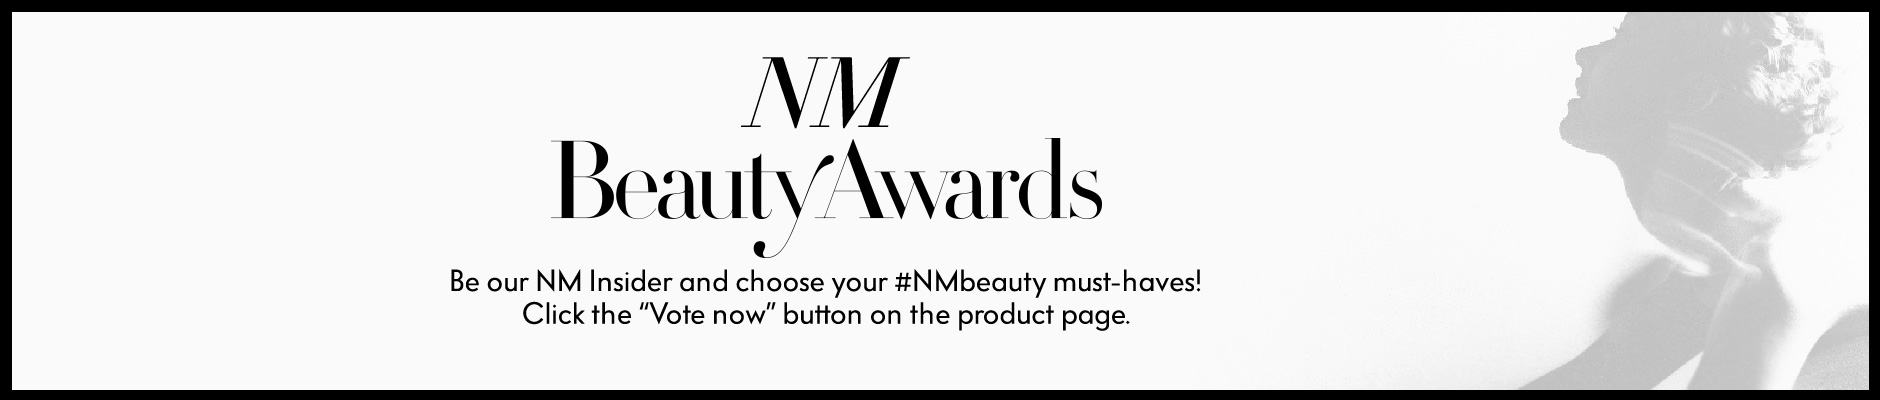 NM Beauty Awards